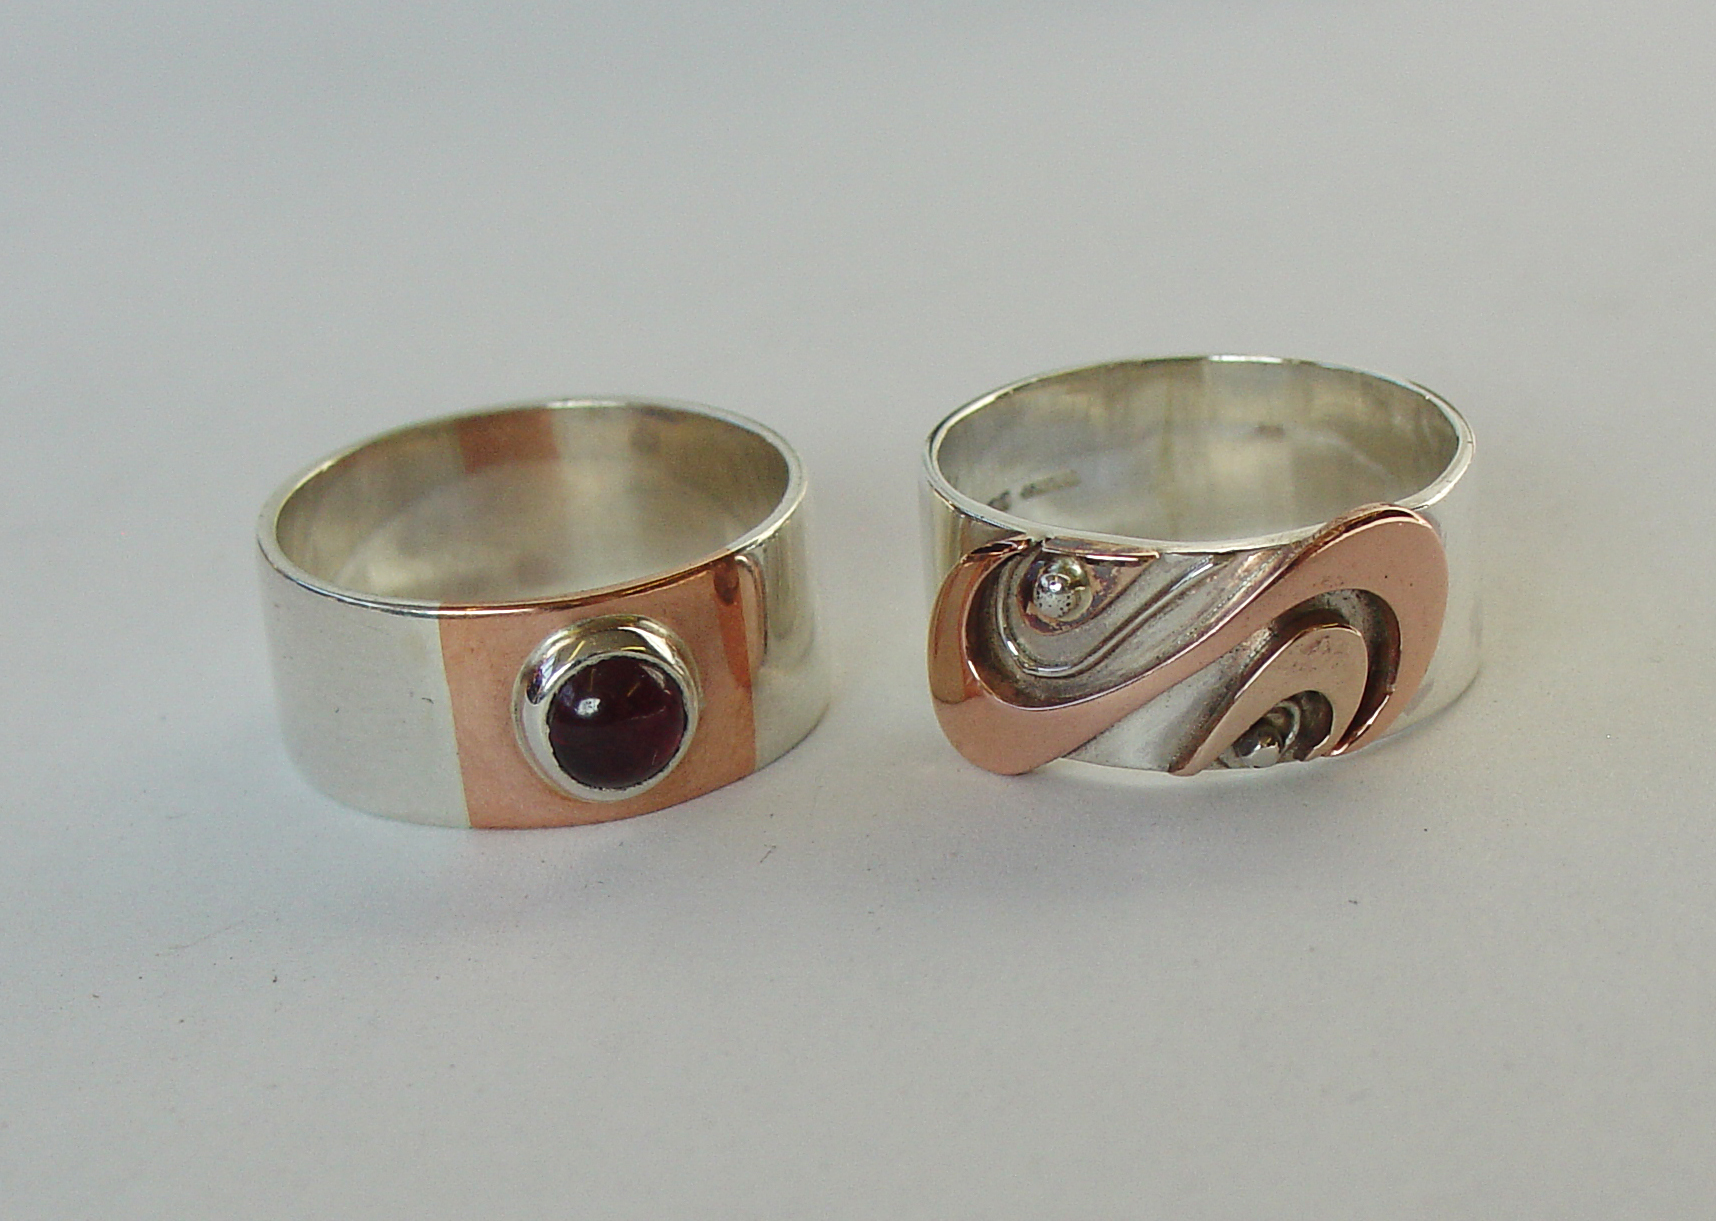 Silver, copper and garnet rings